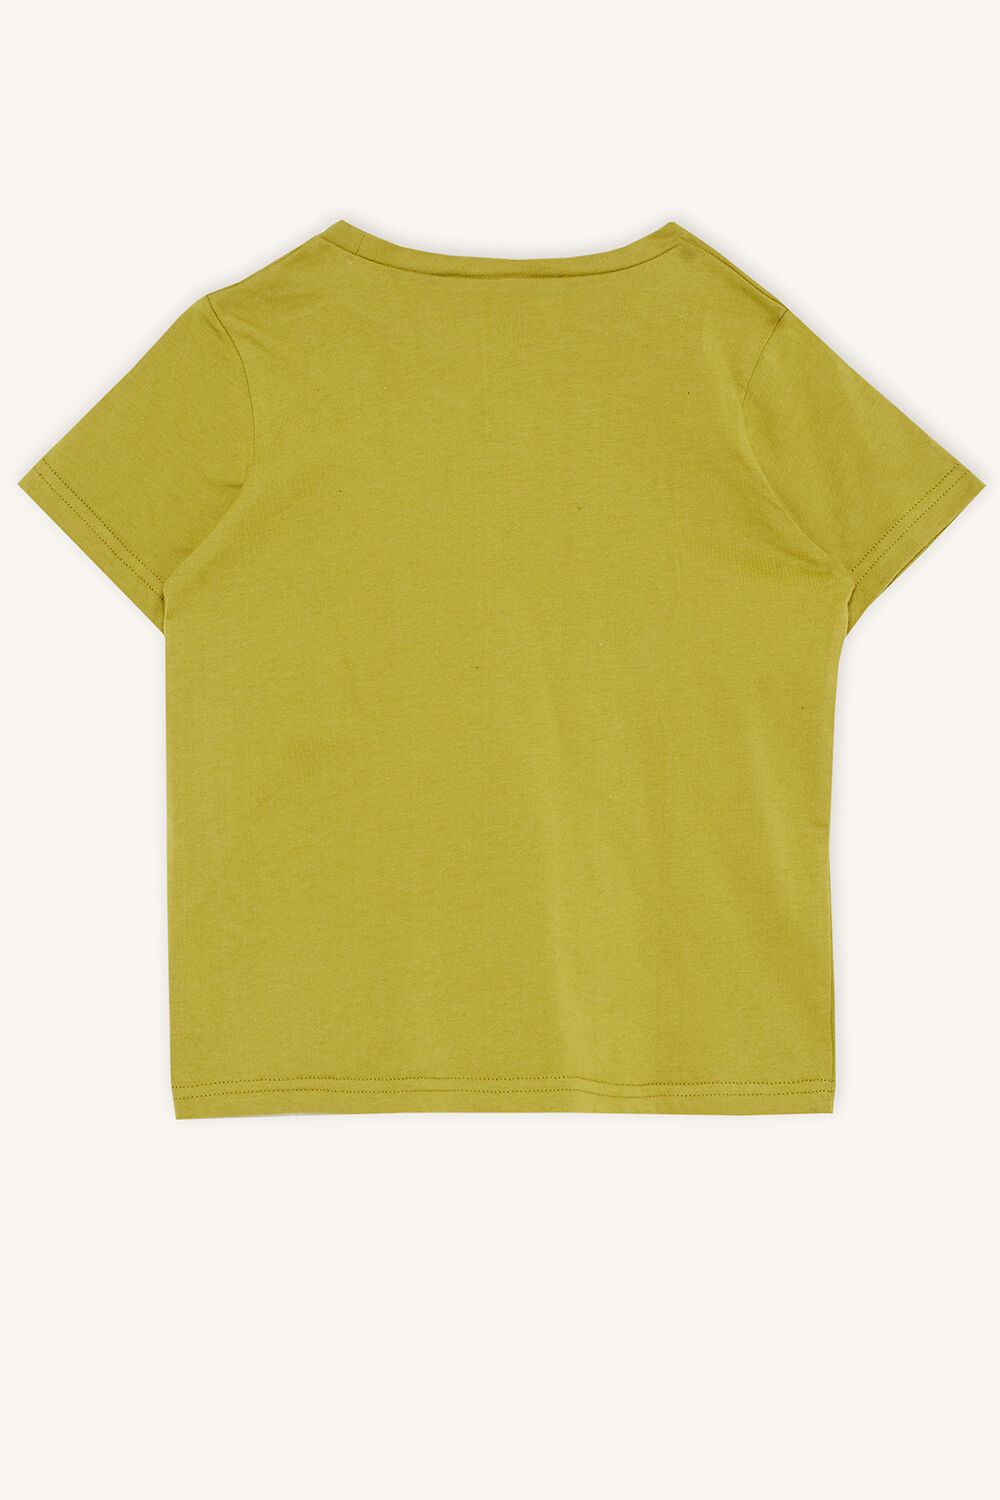 LIKE A KING TEE in colour APPLE GREEN